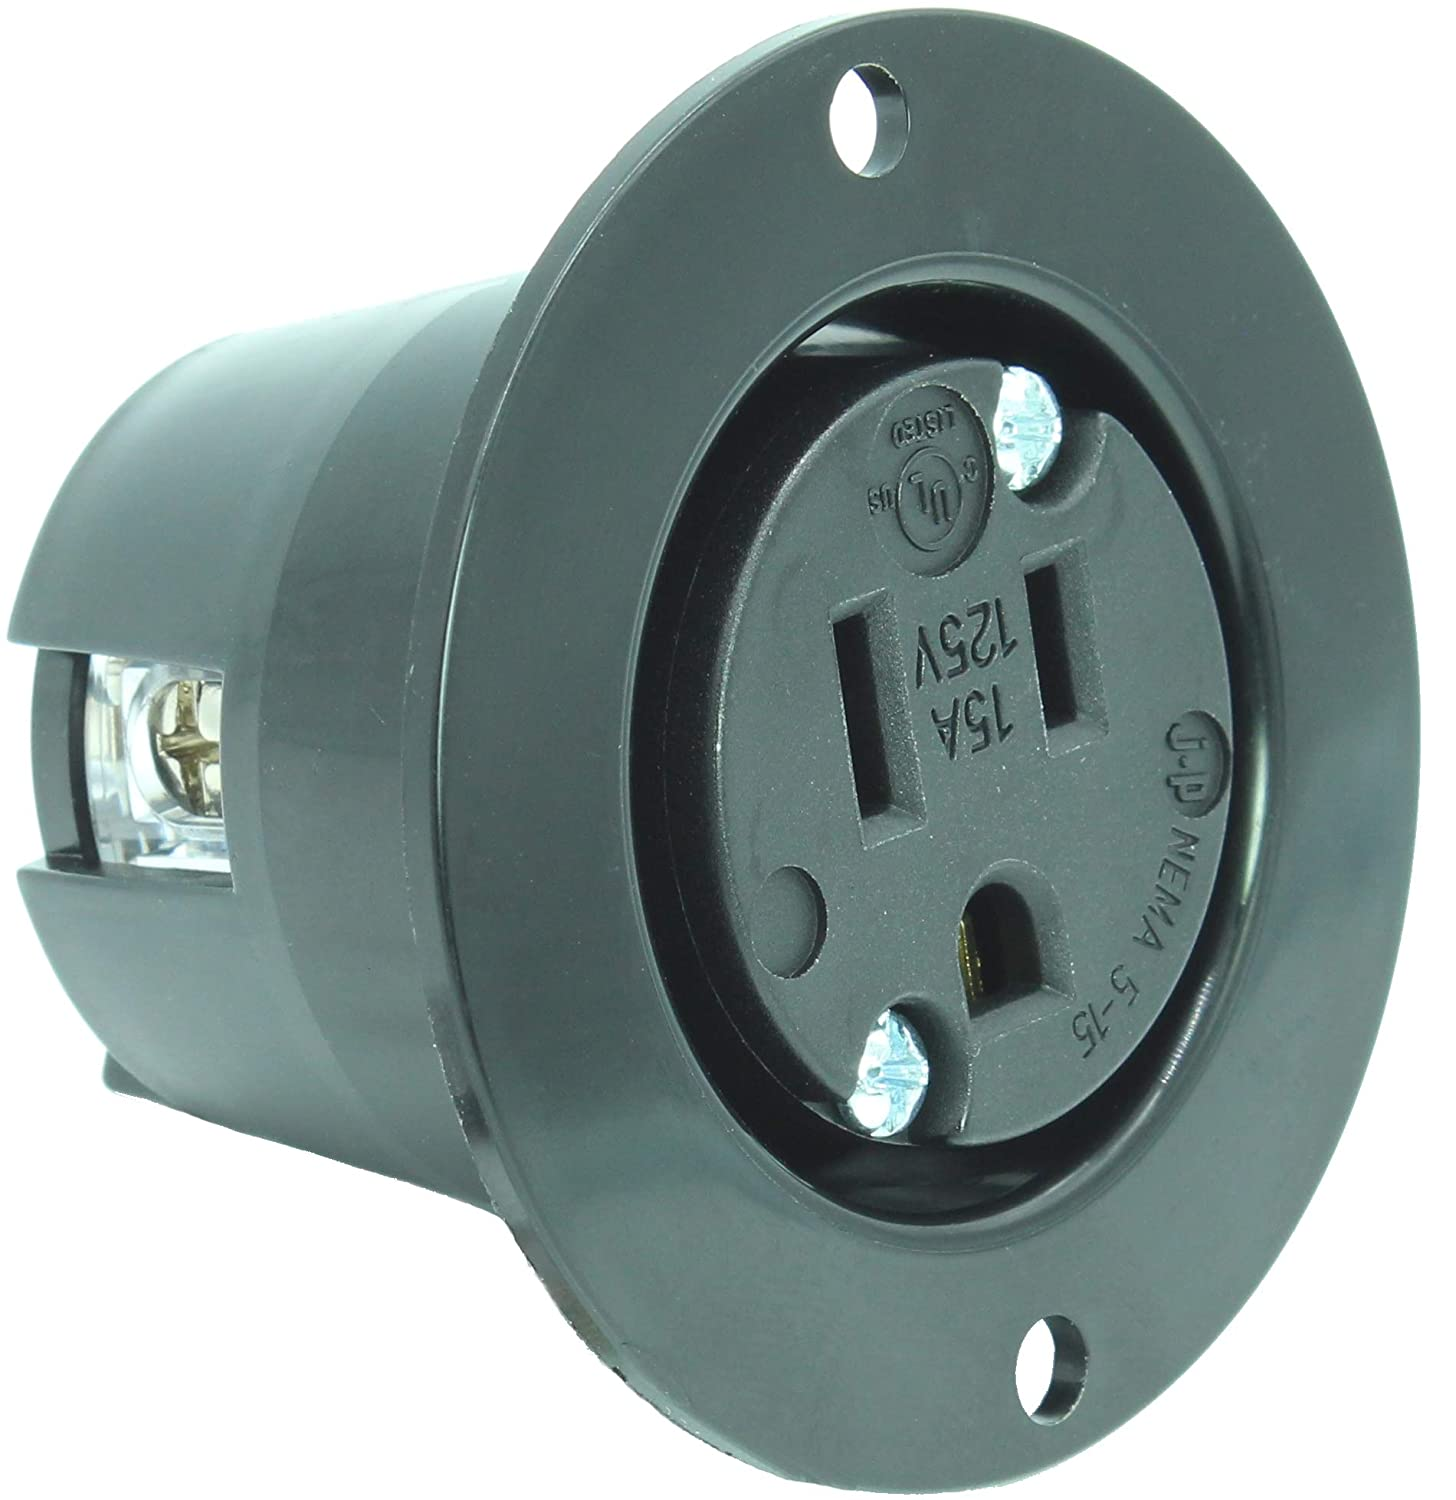 Journeyman Pro 5279 15 Amp 120 125 Volt Nema 5 Flanged Outlet Heavyduty 3wire Replacement Male Electrical Plug Amazoncom Black Commercial Grade 2 Pole 3 Wire Straight Blade Charger Receptacle No Cover Cap